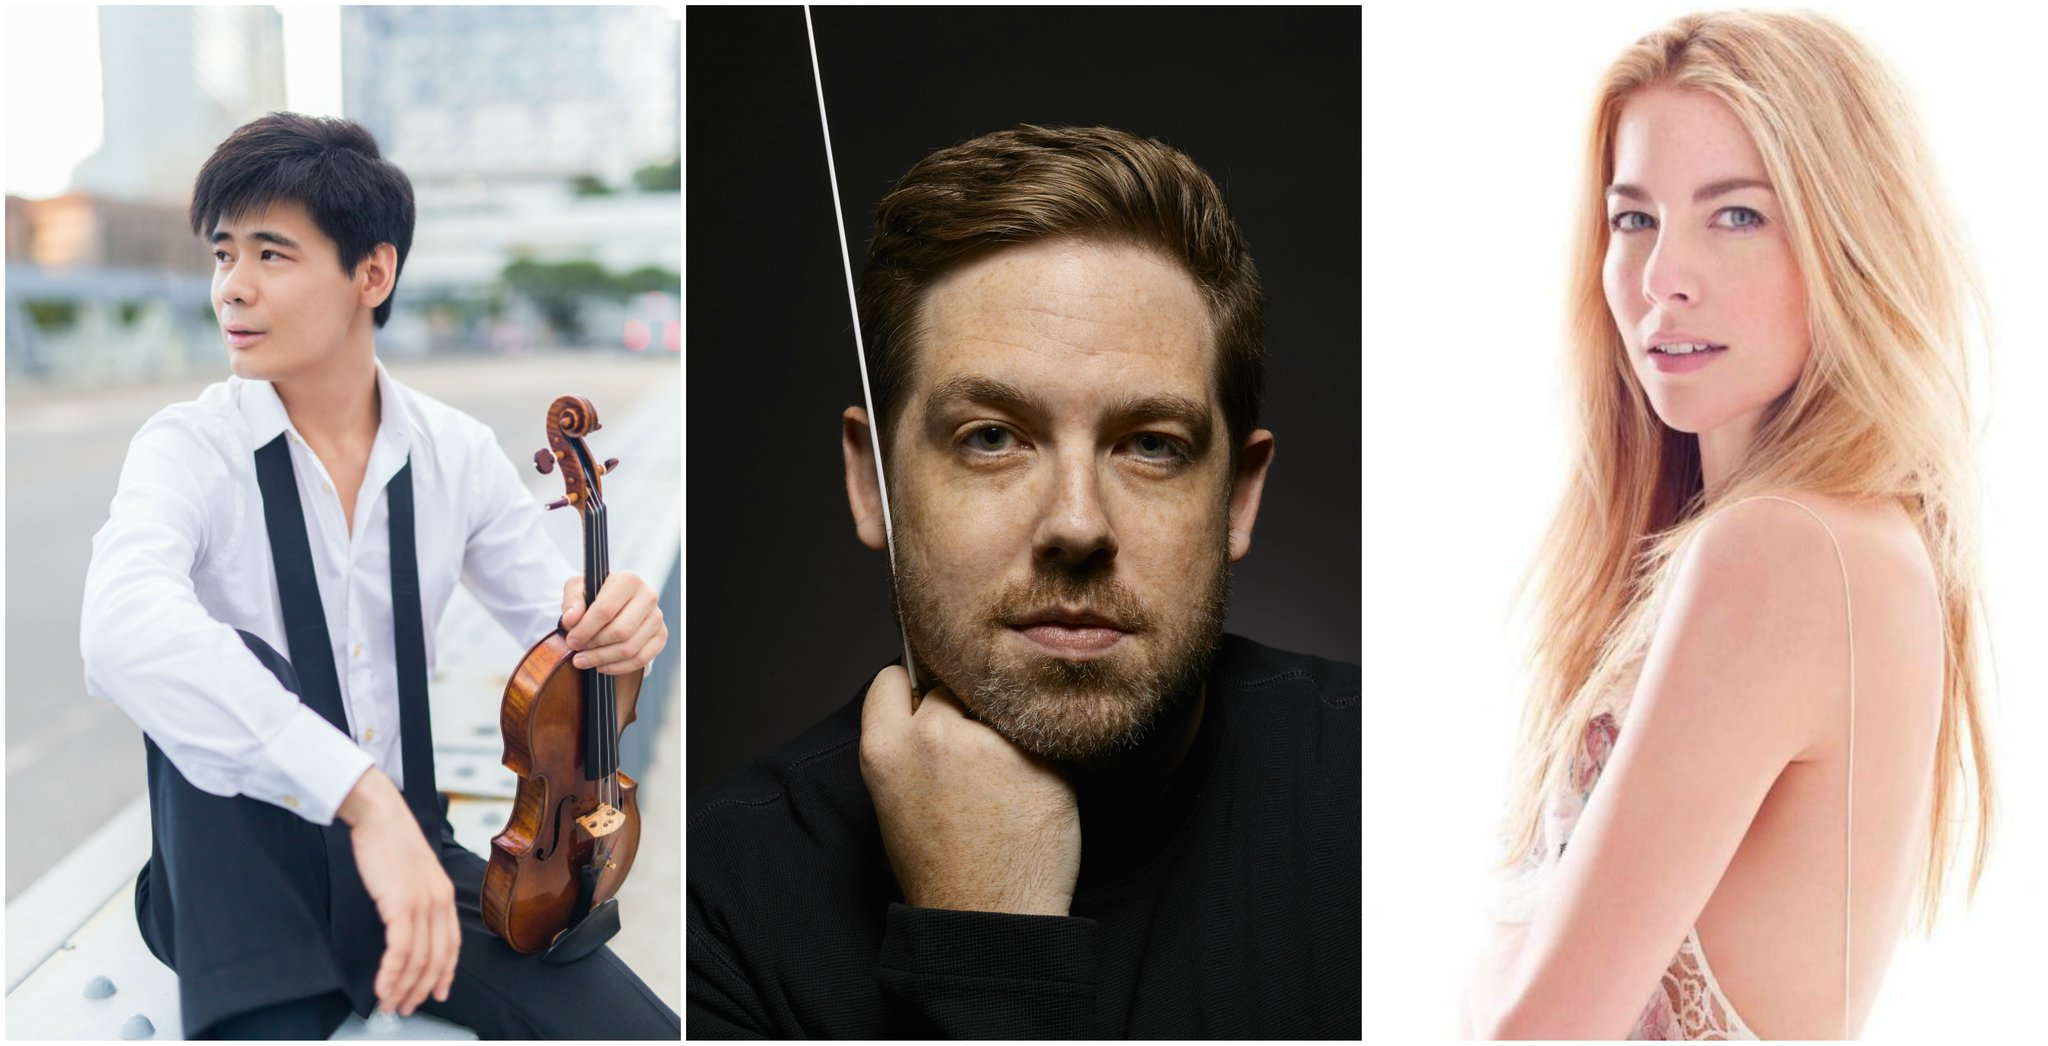 With the New Zealand Symphony Orchestra, Brett Mitchell presented an Italian program featuring violinist Angelo Xiang Yu and a  Bernstein at 100  celebration featuring vocalist Morgan James.